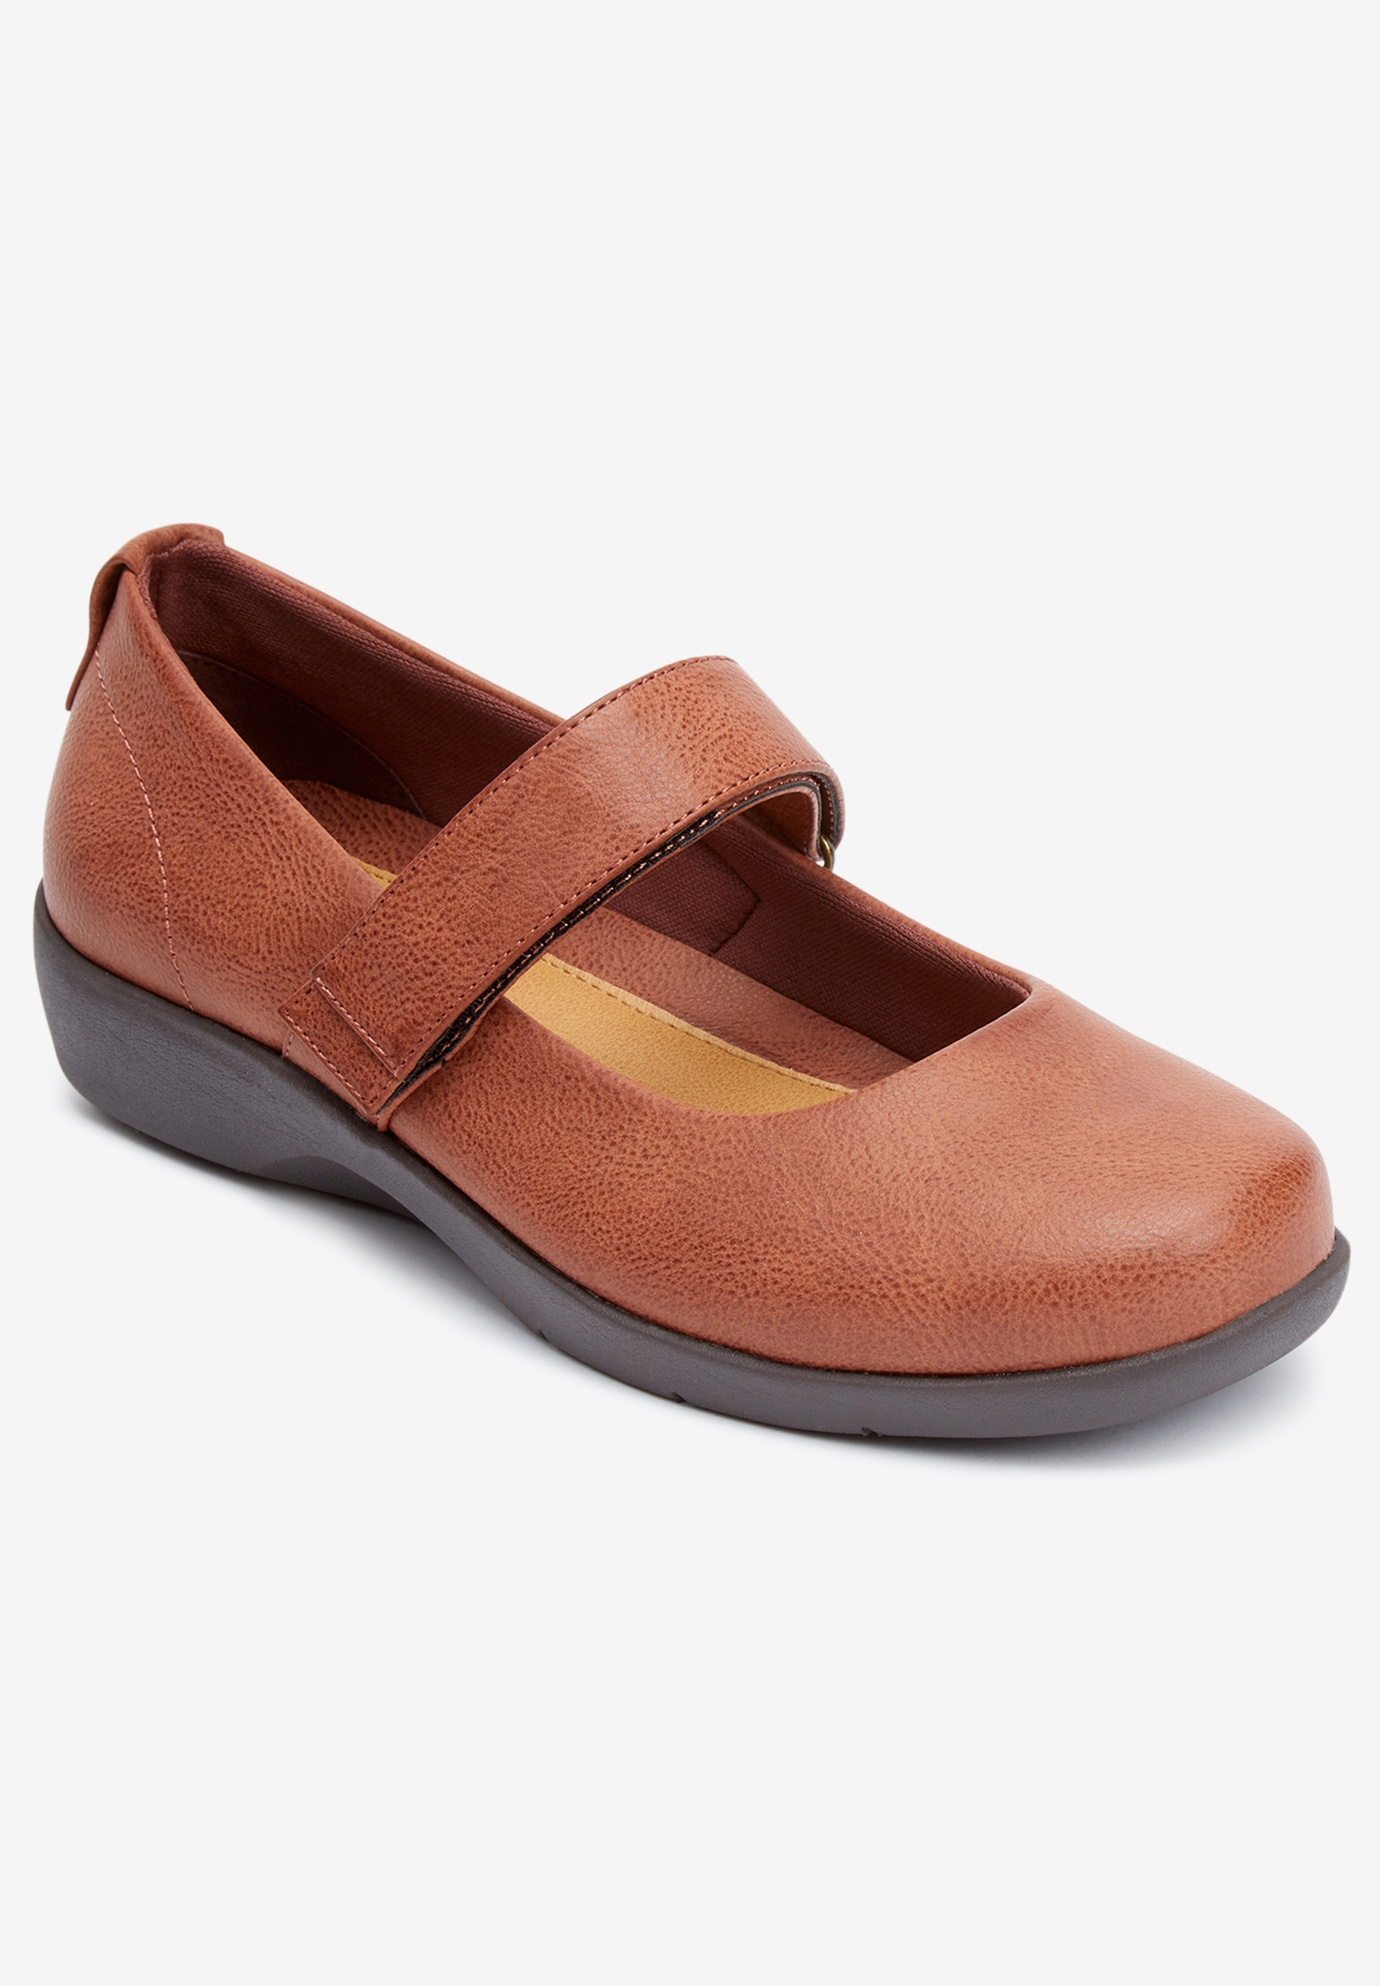 The Carla Mary Jane Flat ,